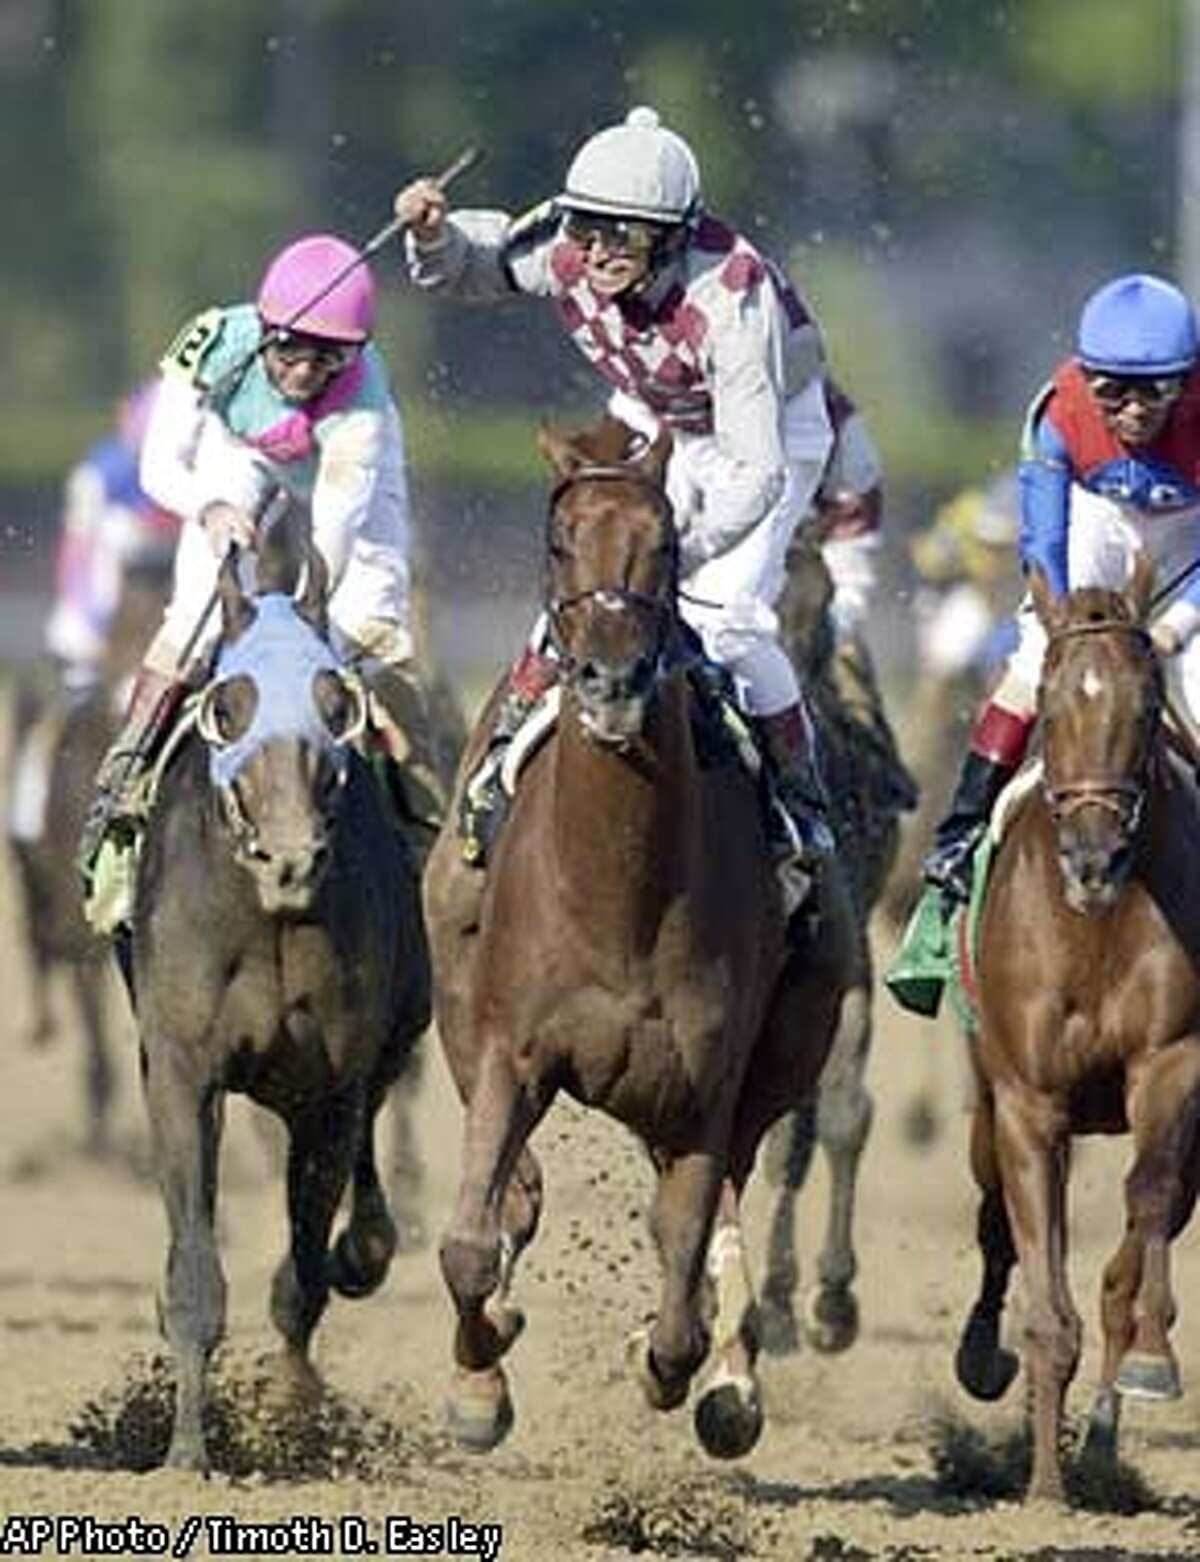 Jockey Jose Santos reacts after riding Funny Cide to victory in the 129th running of the Kentucky Derby on Saturday, May 3, 2003, at Churchill Downs in Louisville, Ky. At left is second place finsher Empire Maker and at right is third place finisher Peace Rules. (AP Photo / Timoth D. Easley)